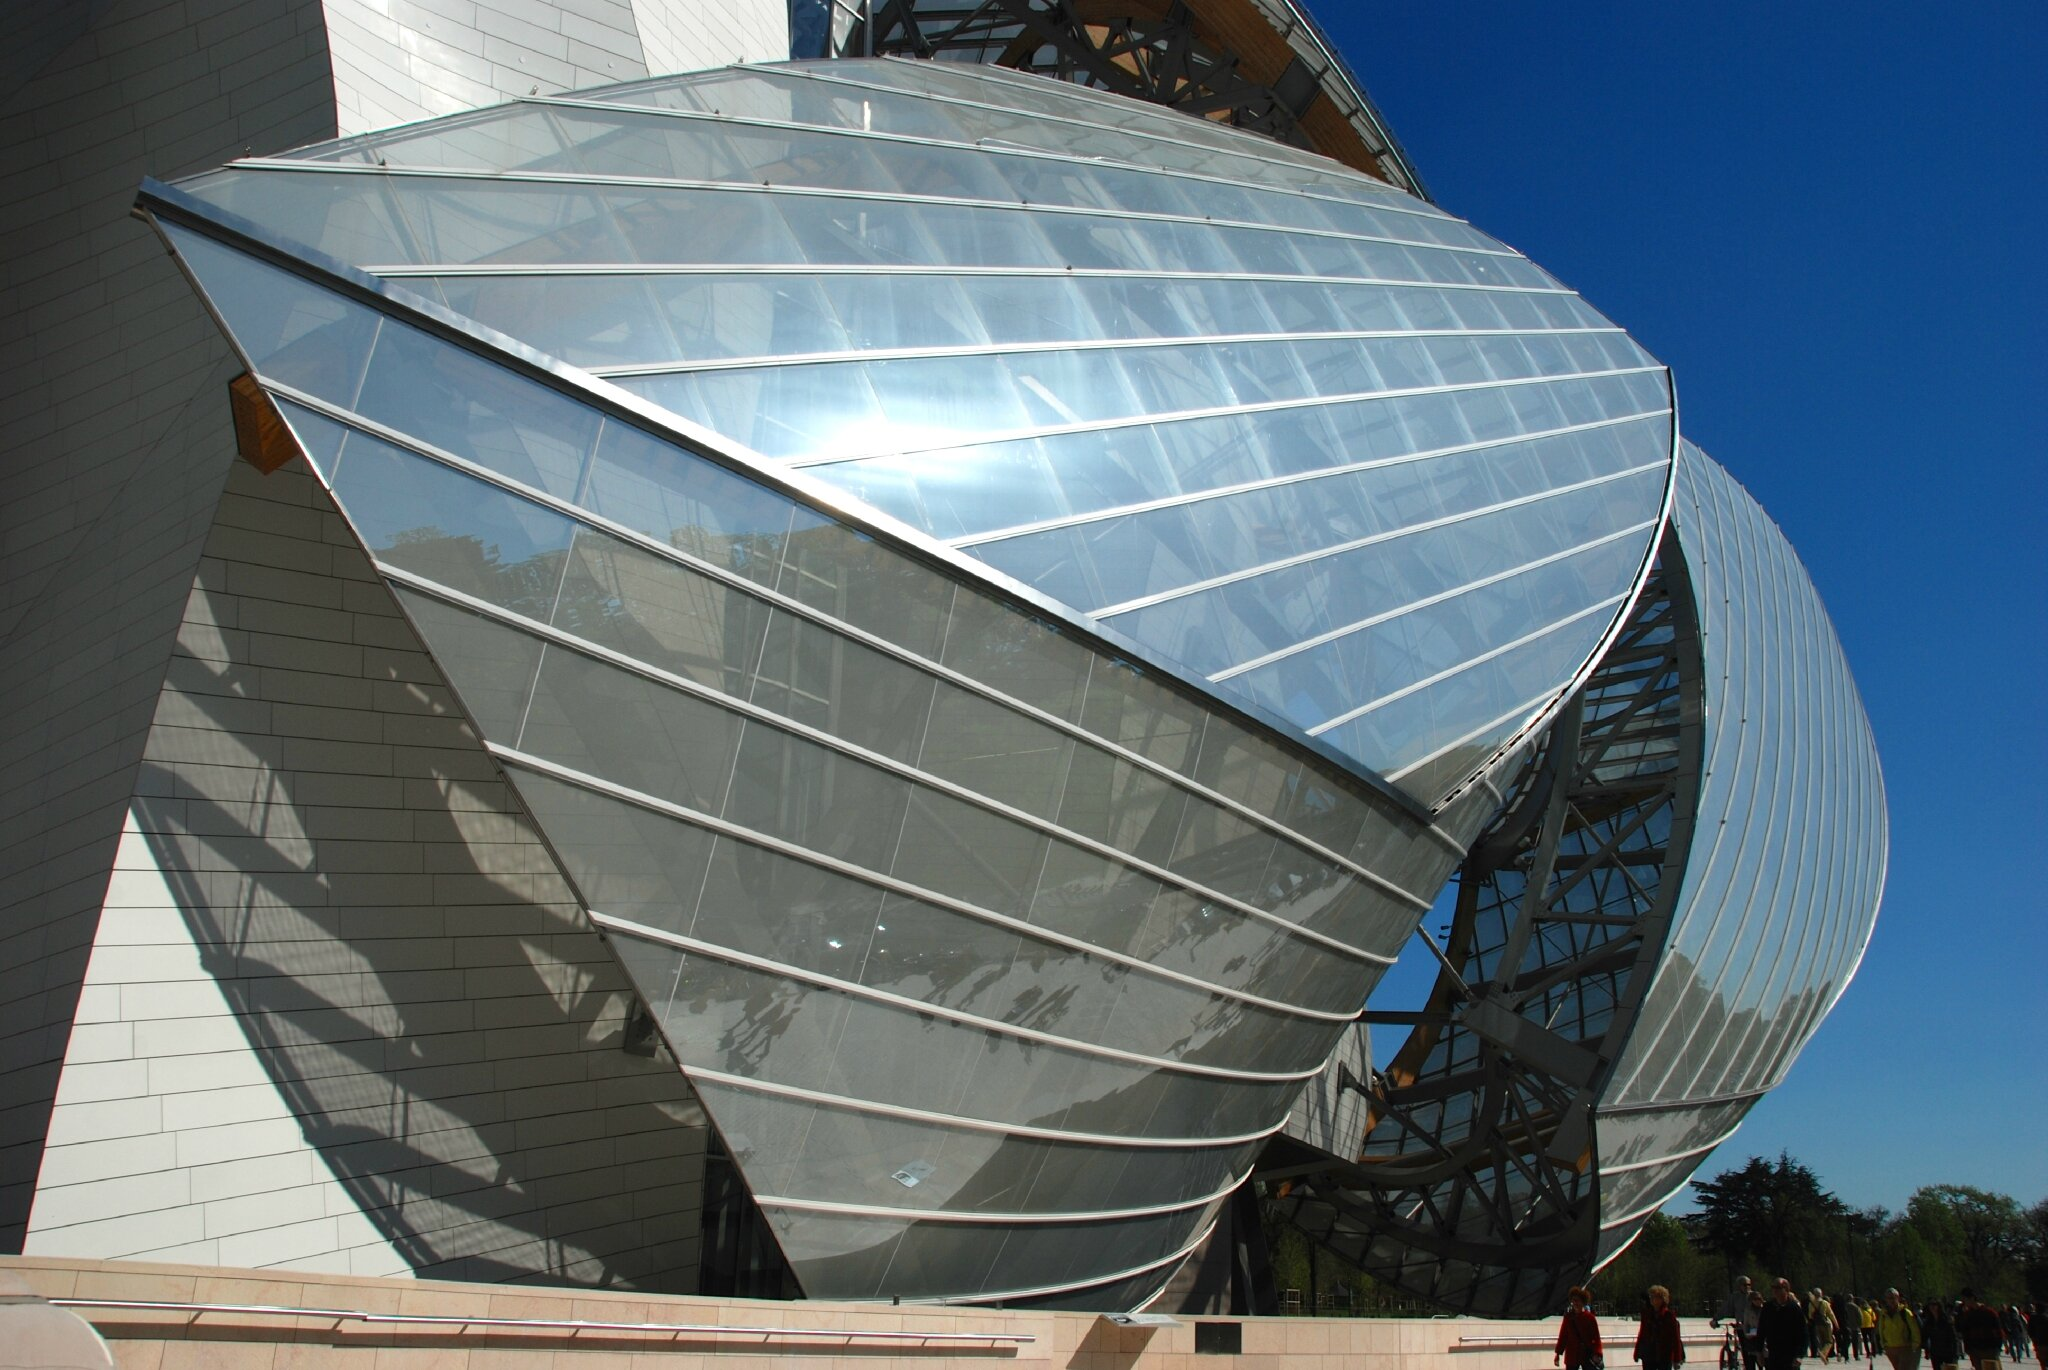 Paris Fondation Louis Vuitton & Jardin d acclimatation